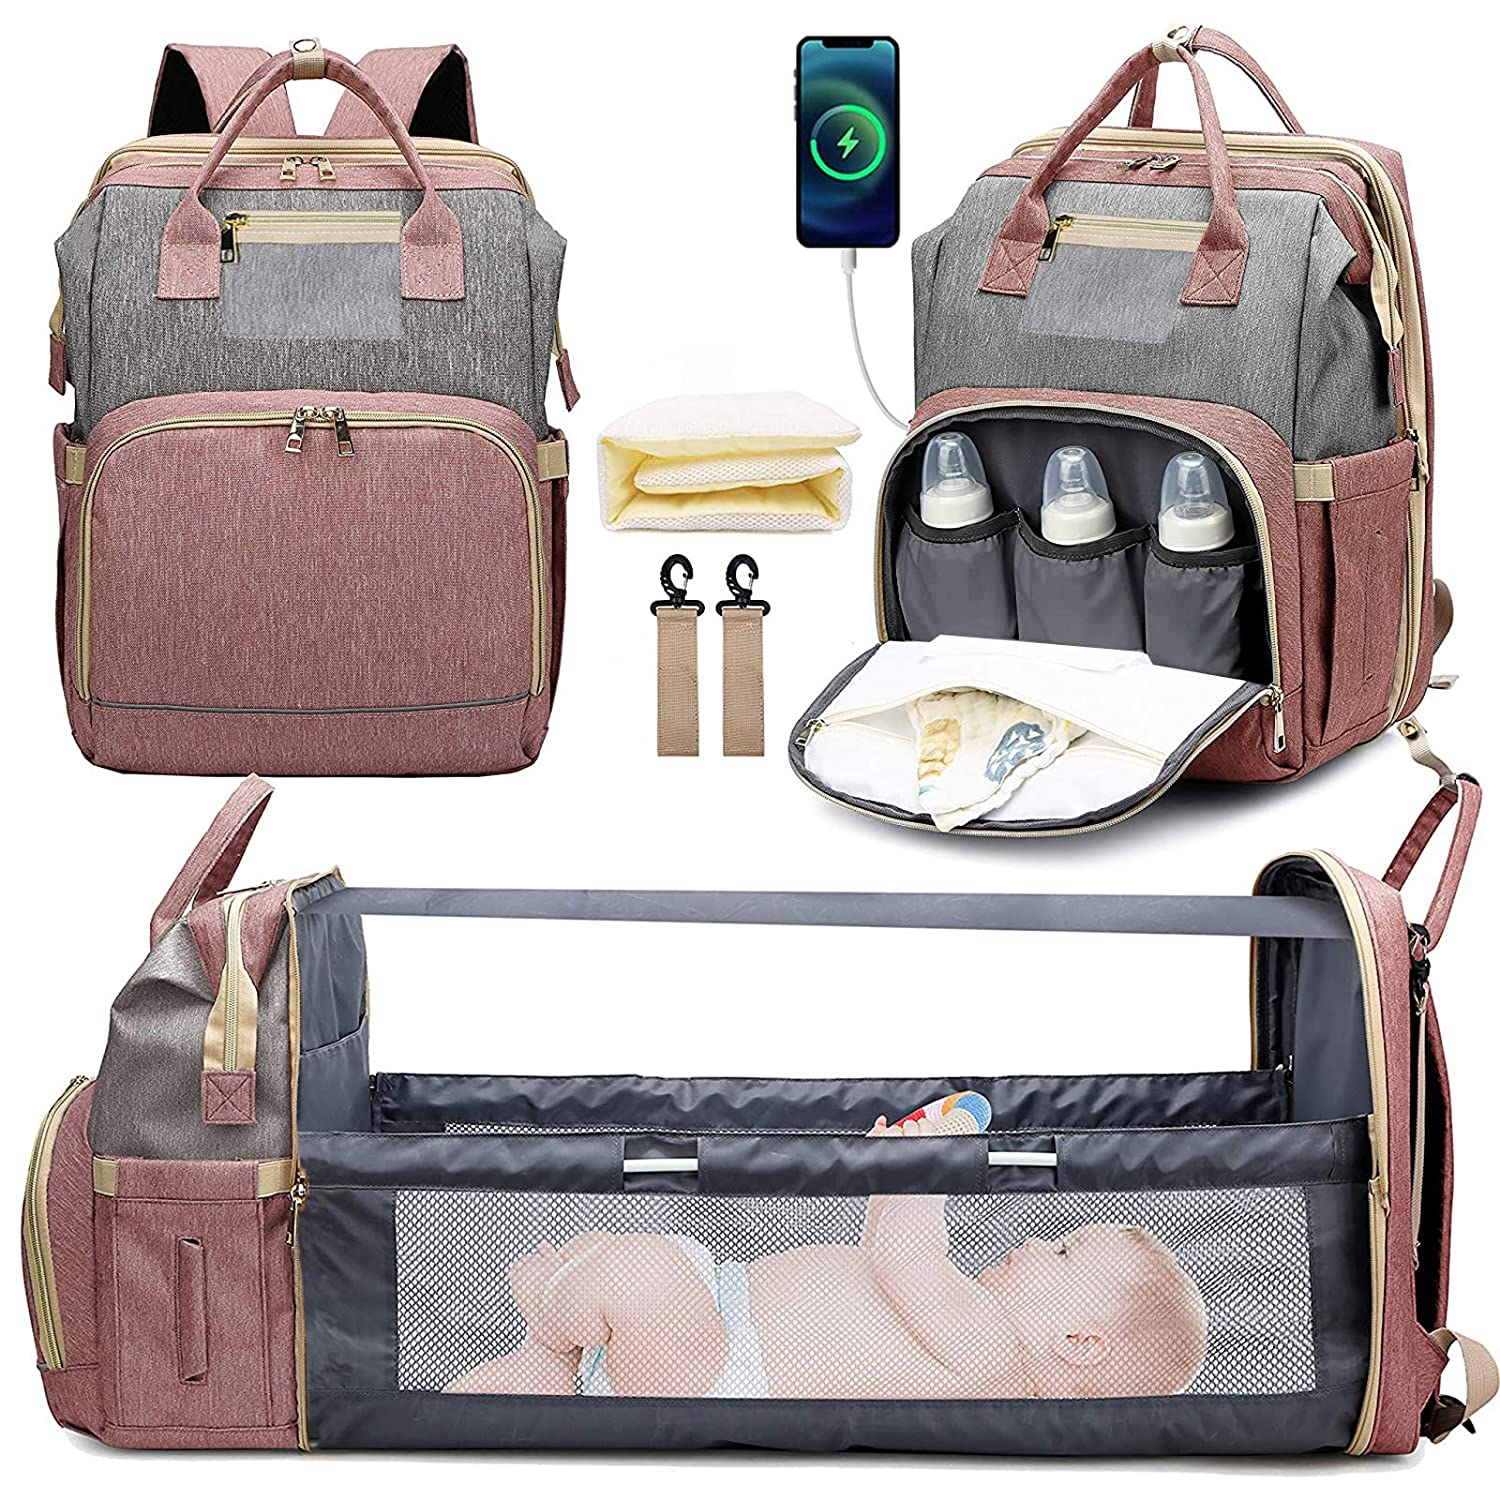 Diaper Bag Backpack with Changing Station, KABAQOO Large Baby Diaper Bags for Boys Girls, Portable Bassinets with USB Charging Port, Multifunction Waterproof Travel Back Pack for Moms Dads, Pink+Grey